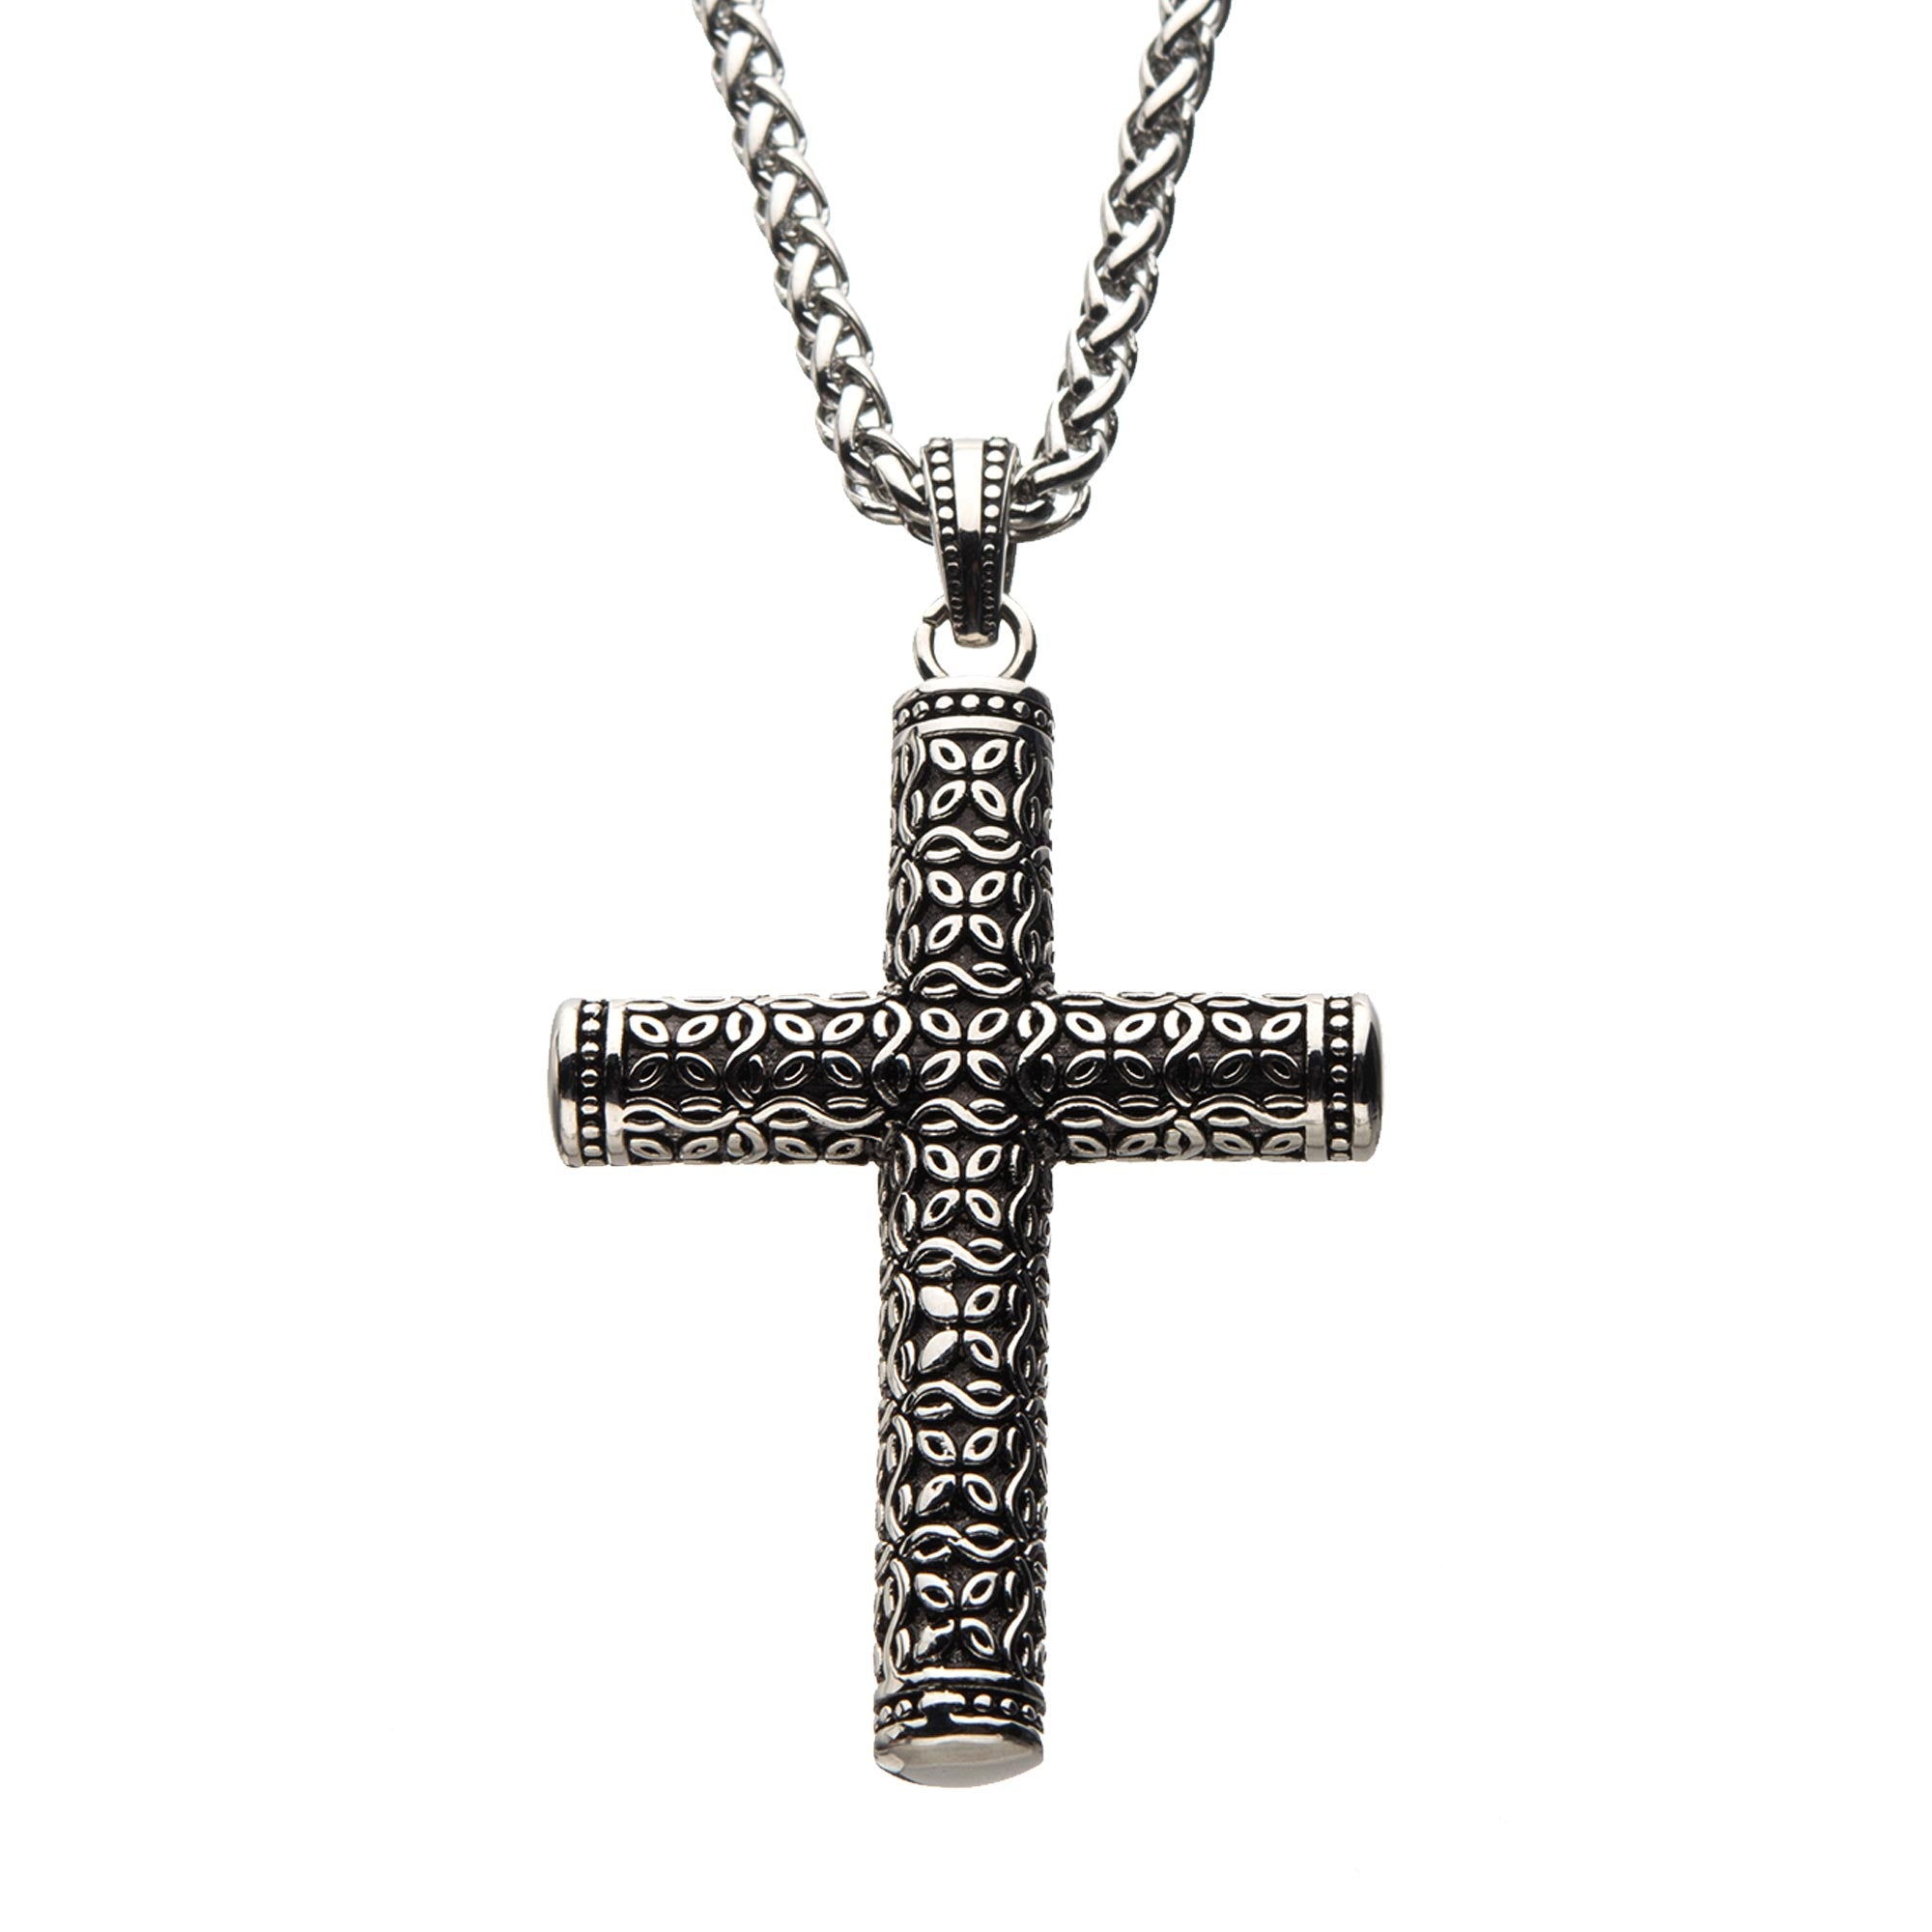 Black Oxidized Steel Rounded Cross Pendant with Steel Wheat Chain